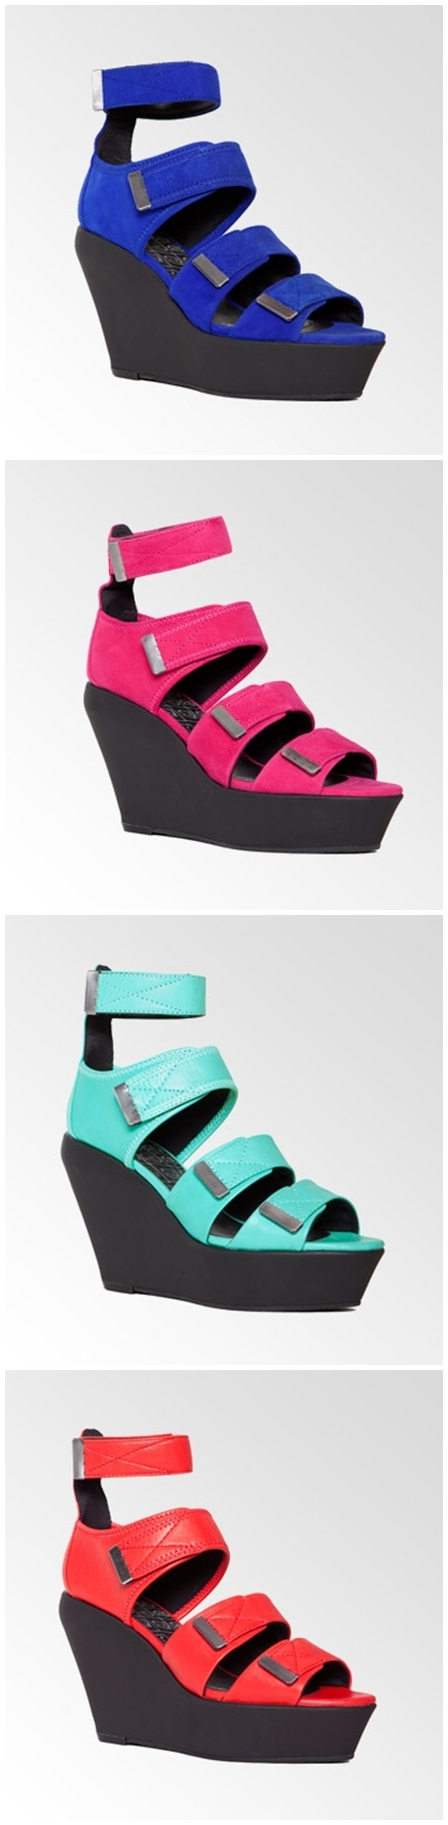 tenerife wedges vagabond, pink weges, red wedges, blue wedges, vagabond kilehæl